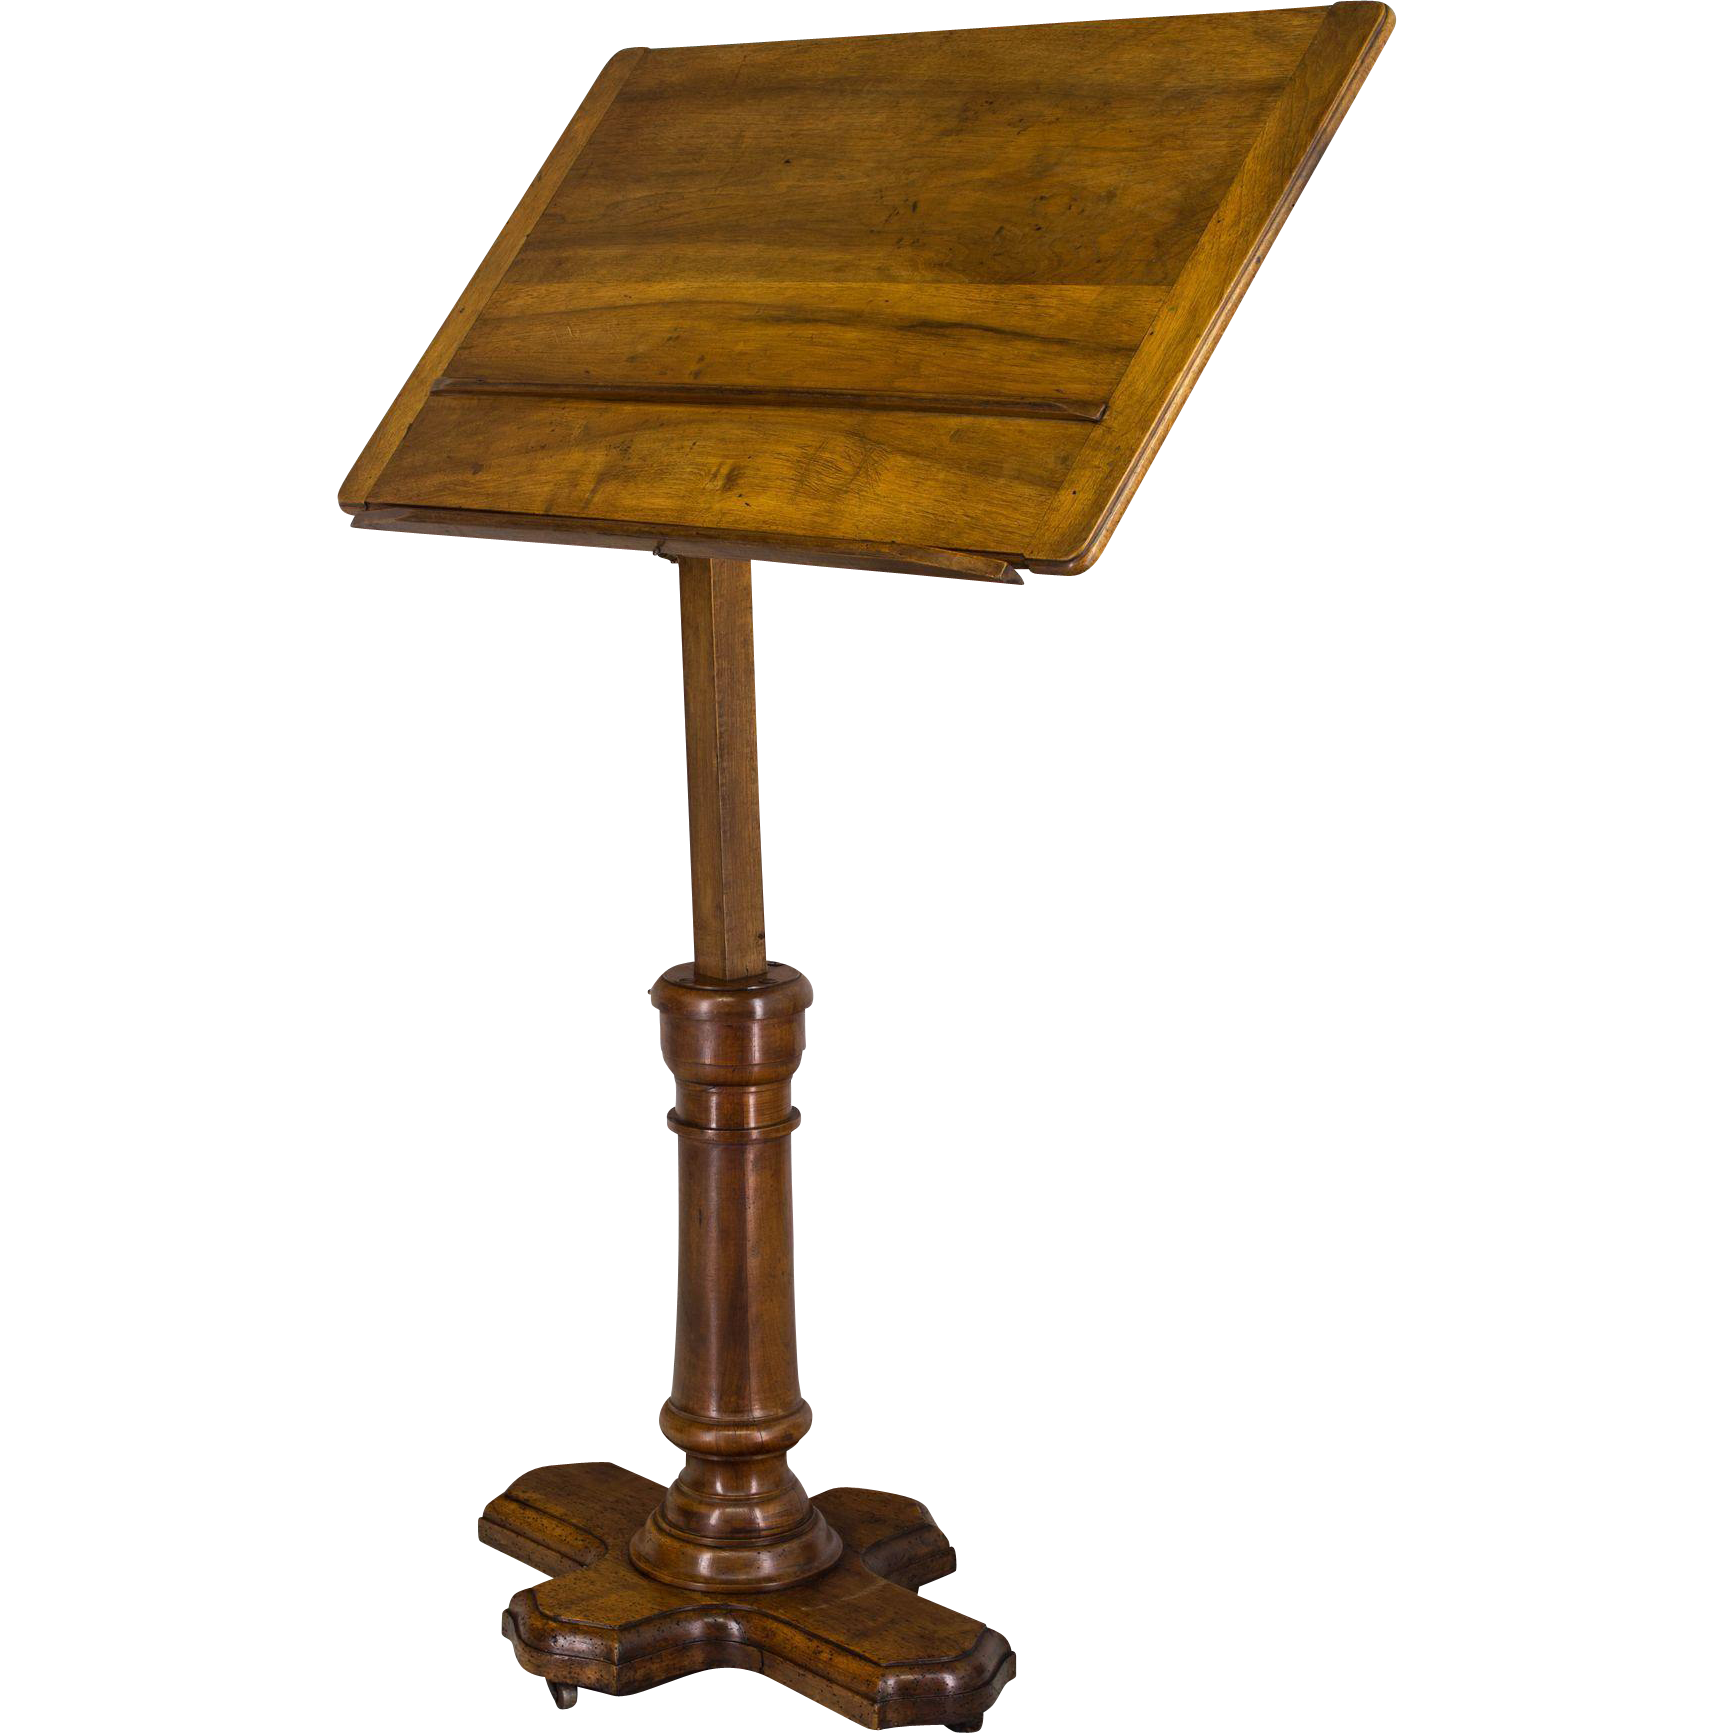 19th c. French Stand or Tilt-Top Table